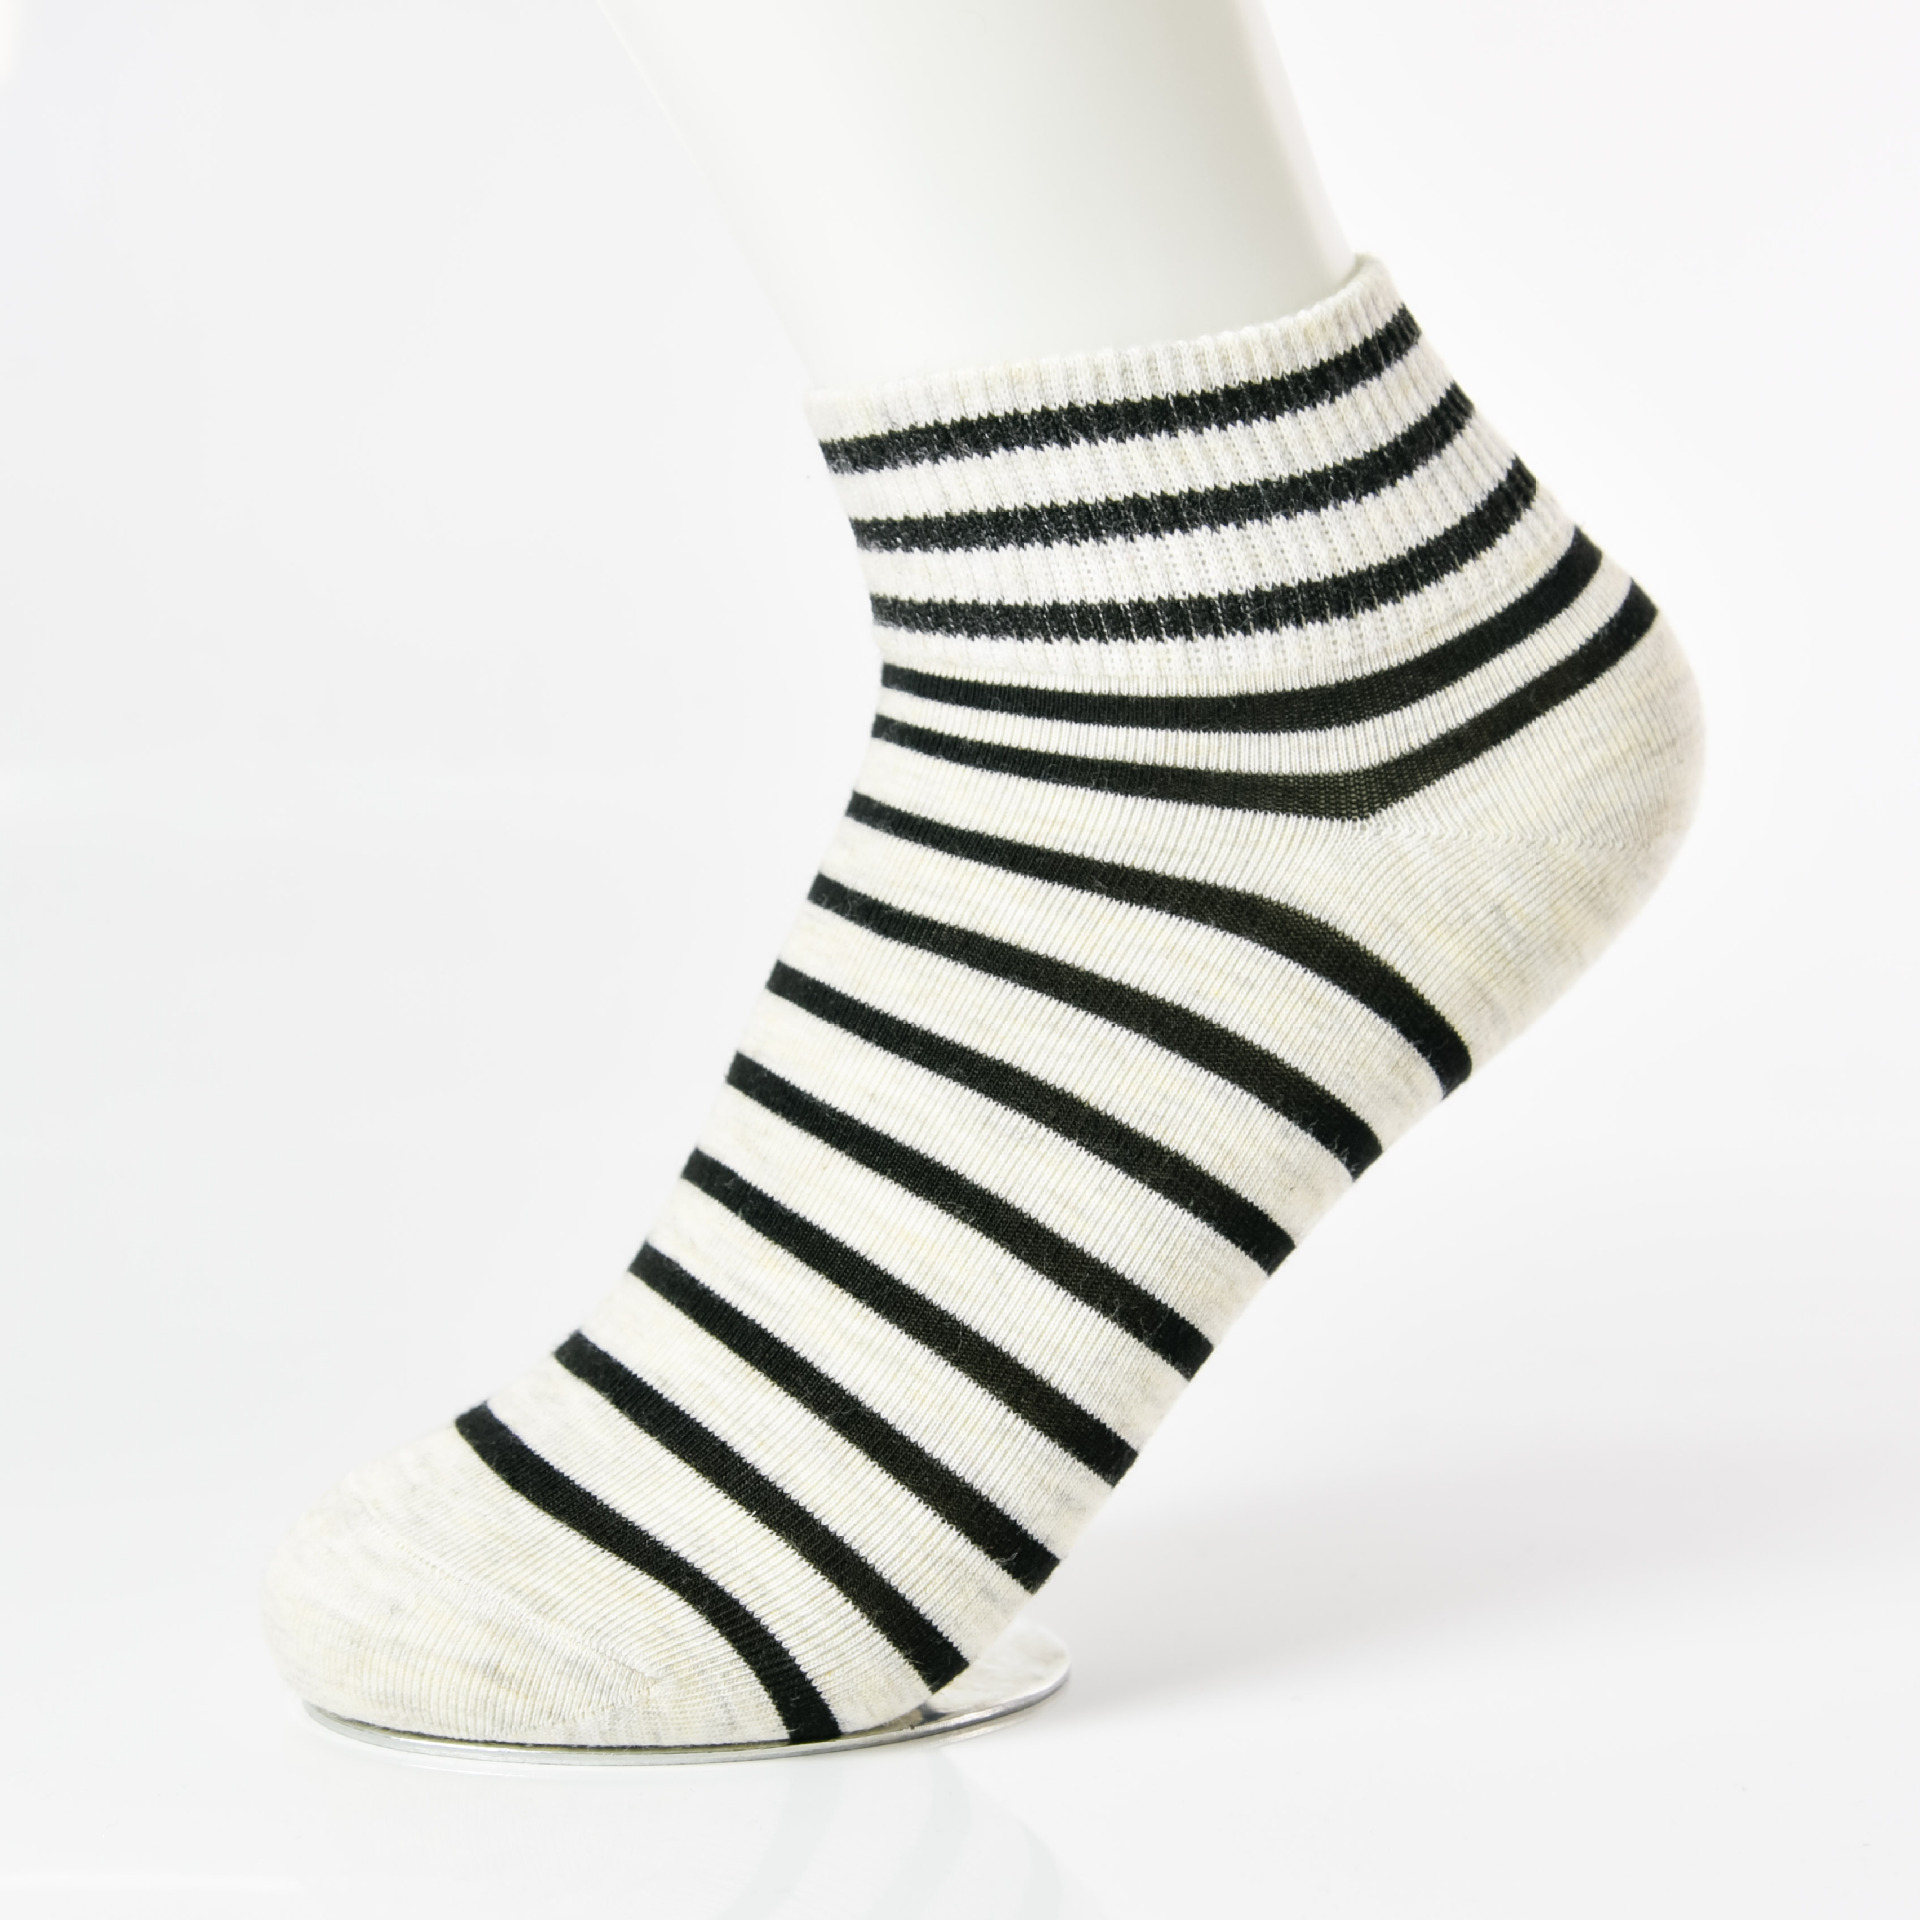 Japan casual dress socks students ankle sock